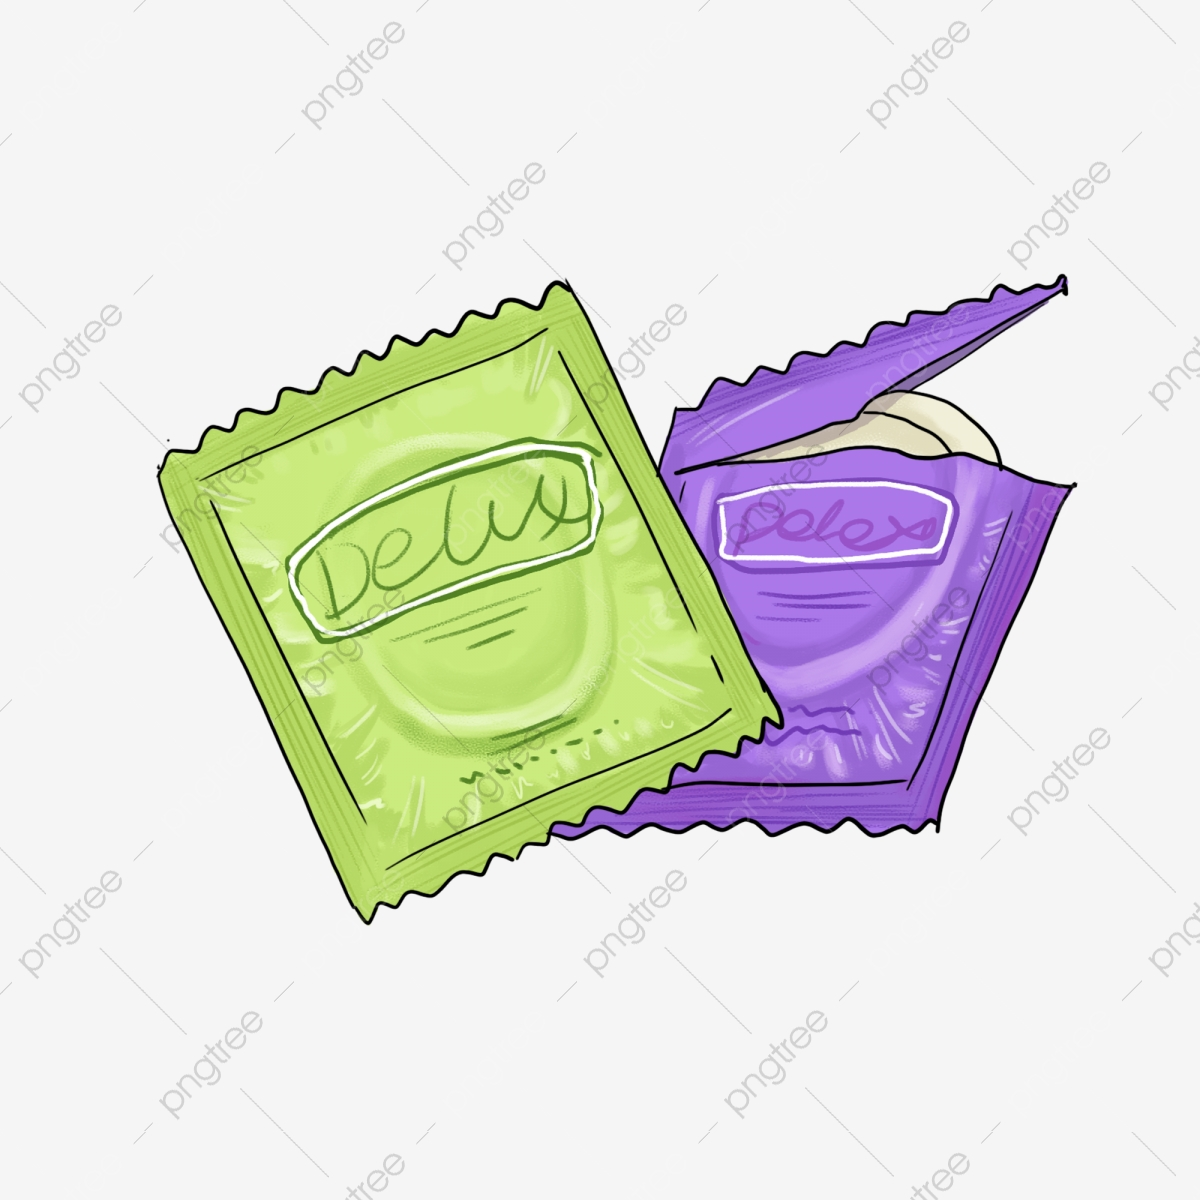 condom png images vector and psd files free download on pngtree https pngtree com freepng cartoon rubber condom illustration 5453056 html